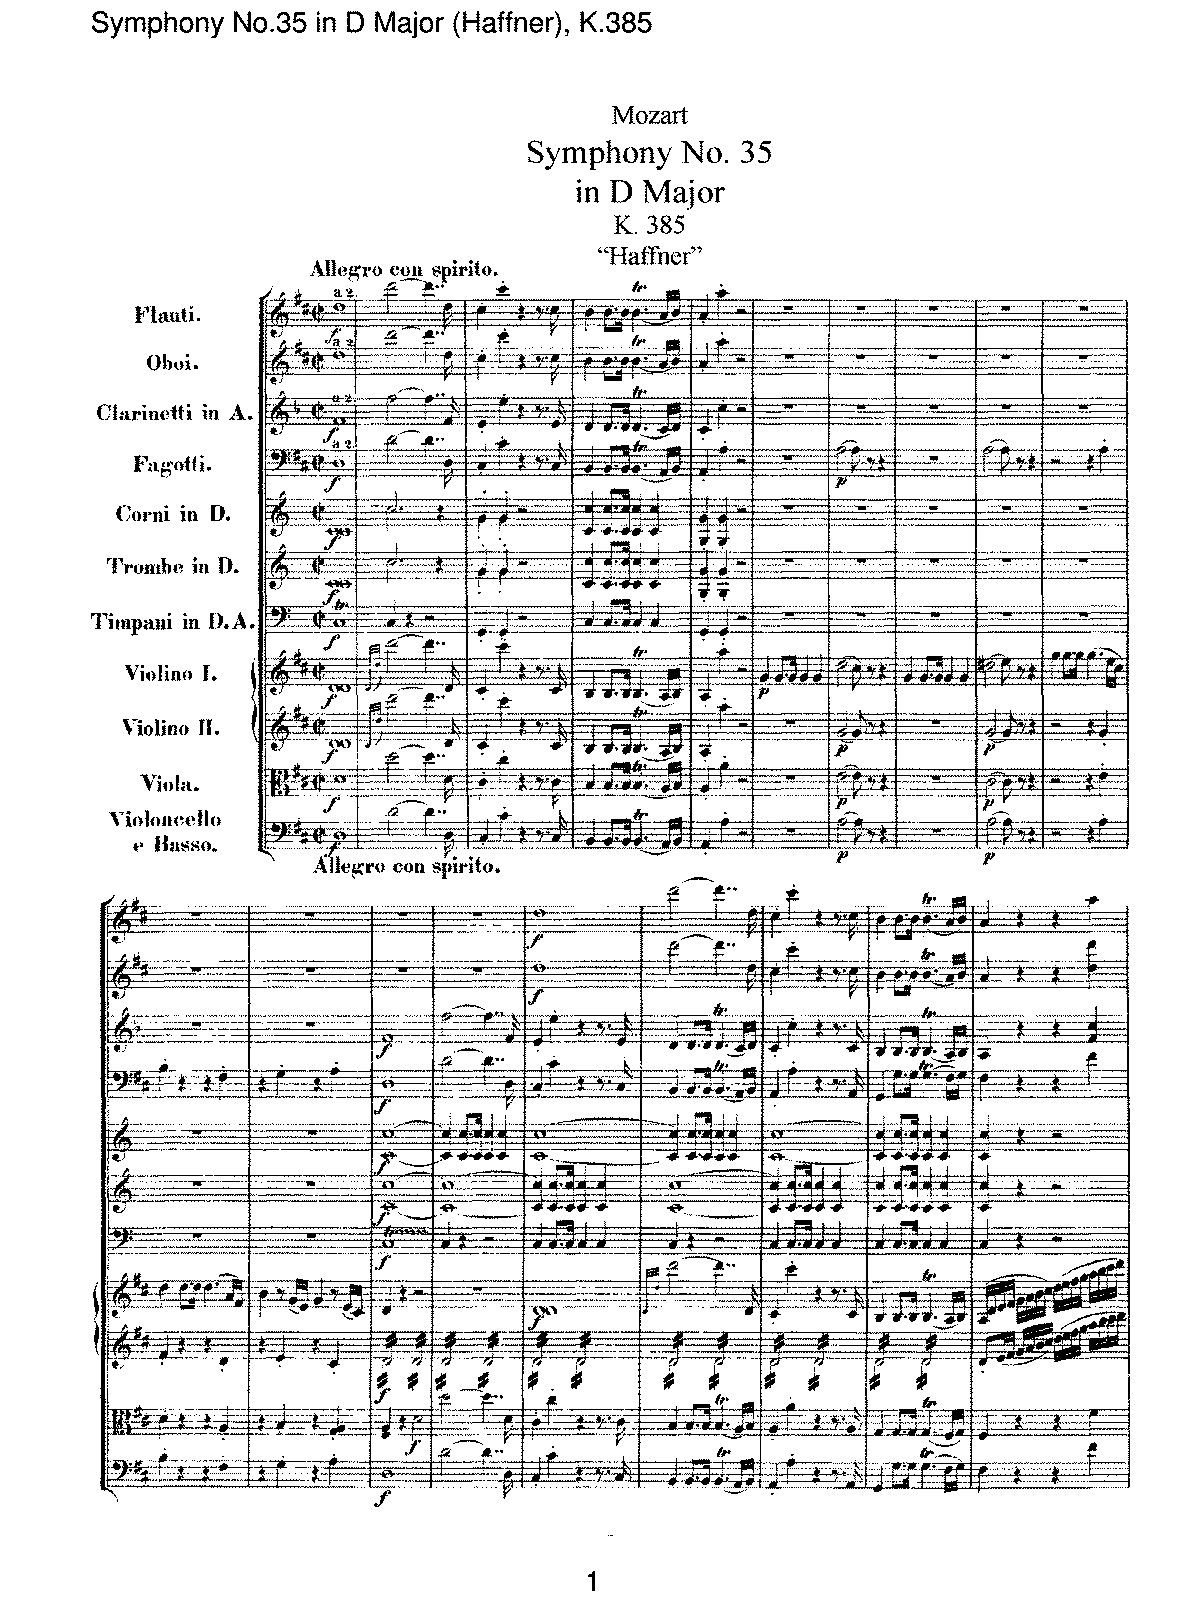 Mozart - Symphony No 35 in D Major (Haffner), K385.pdf